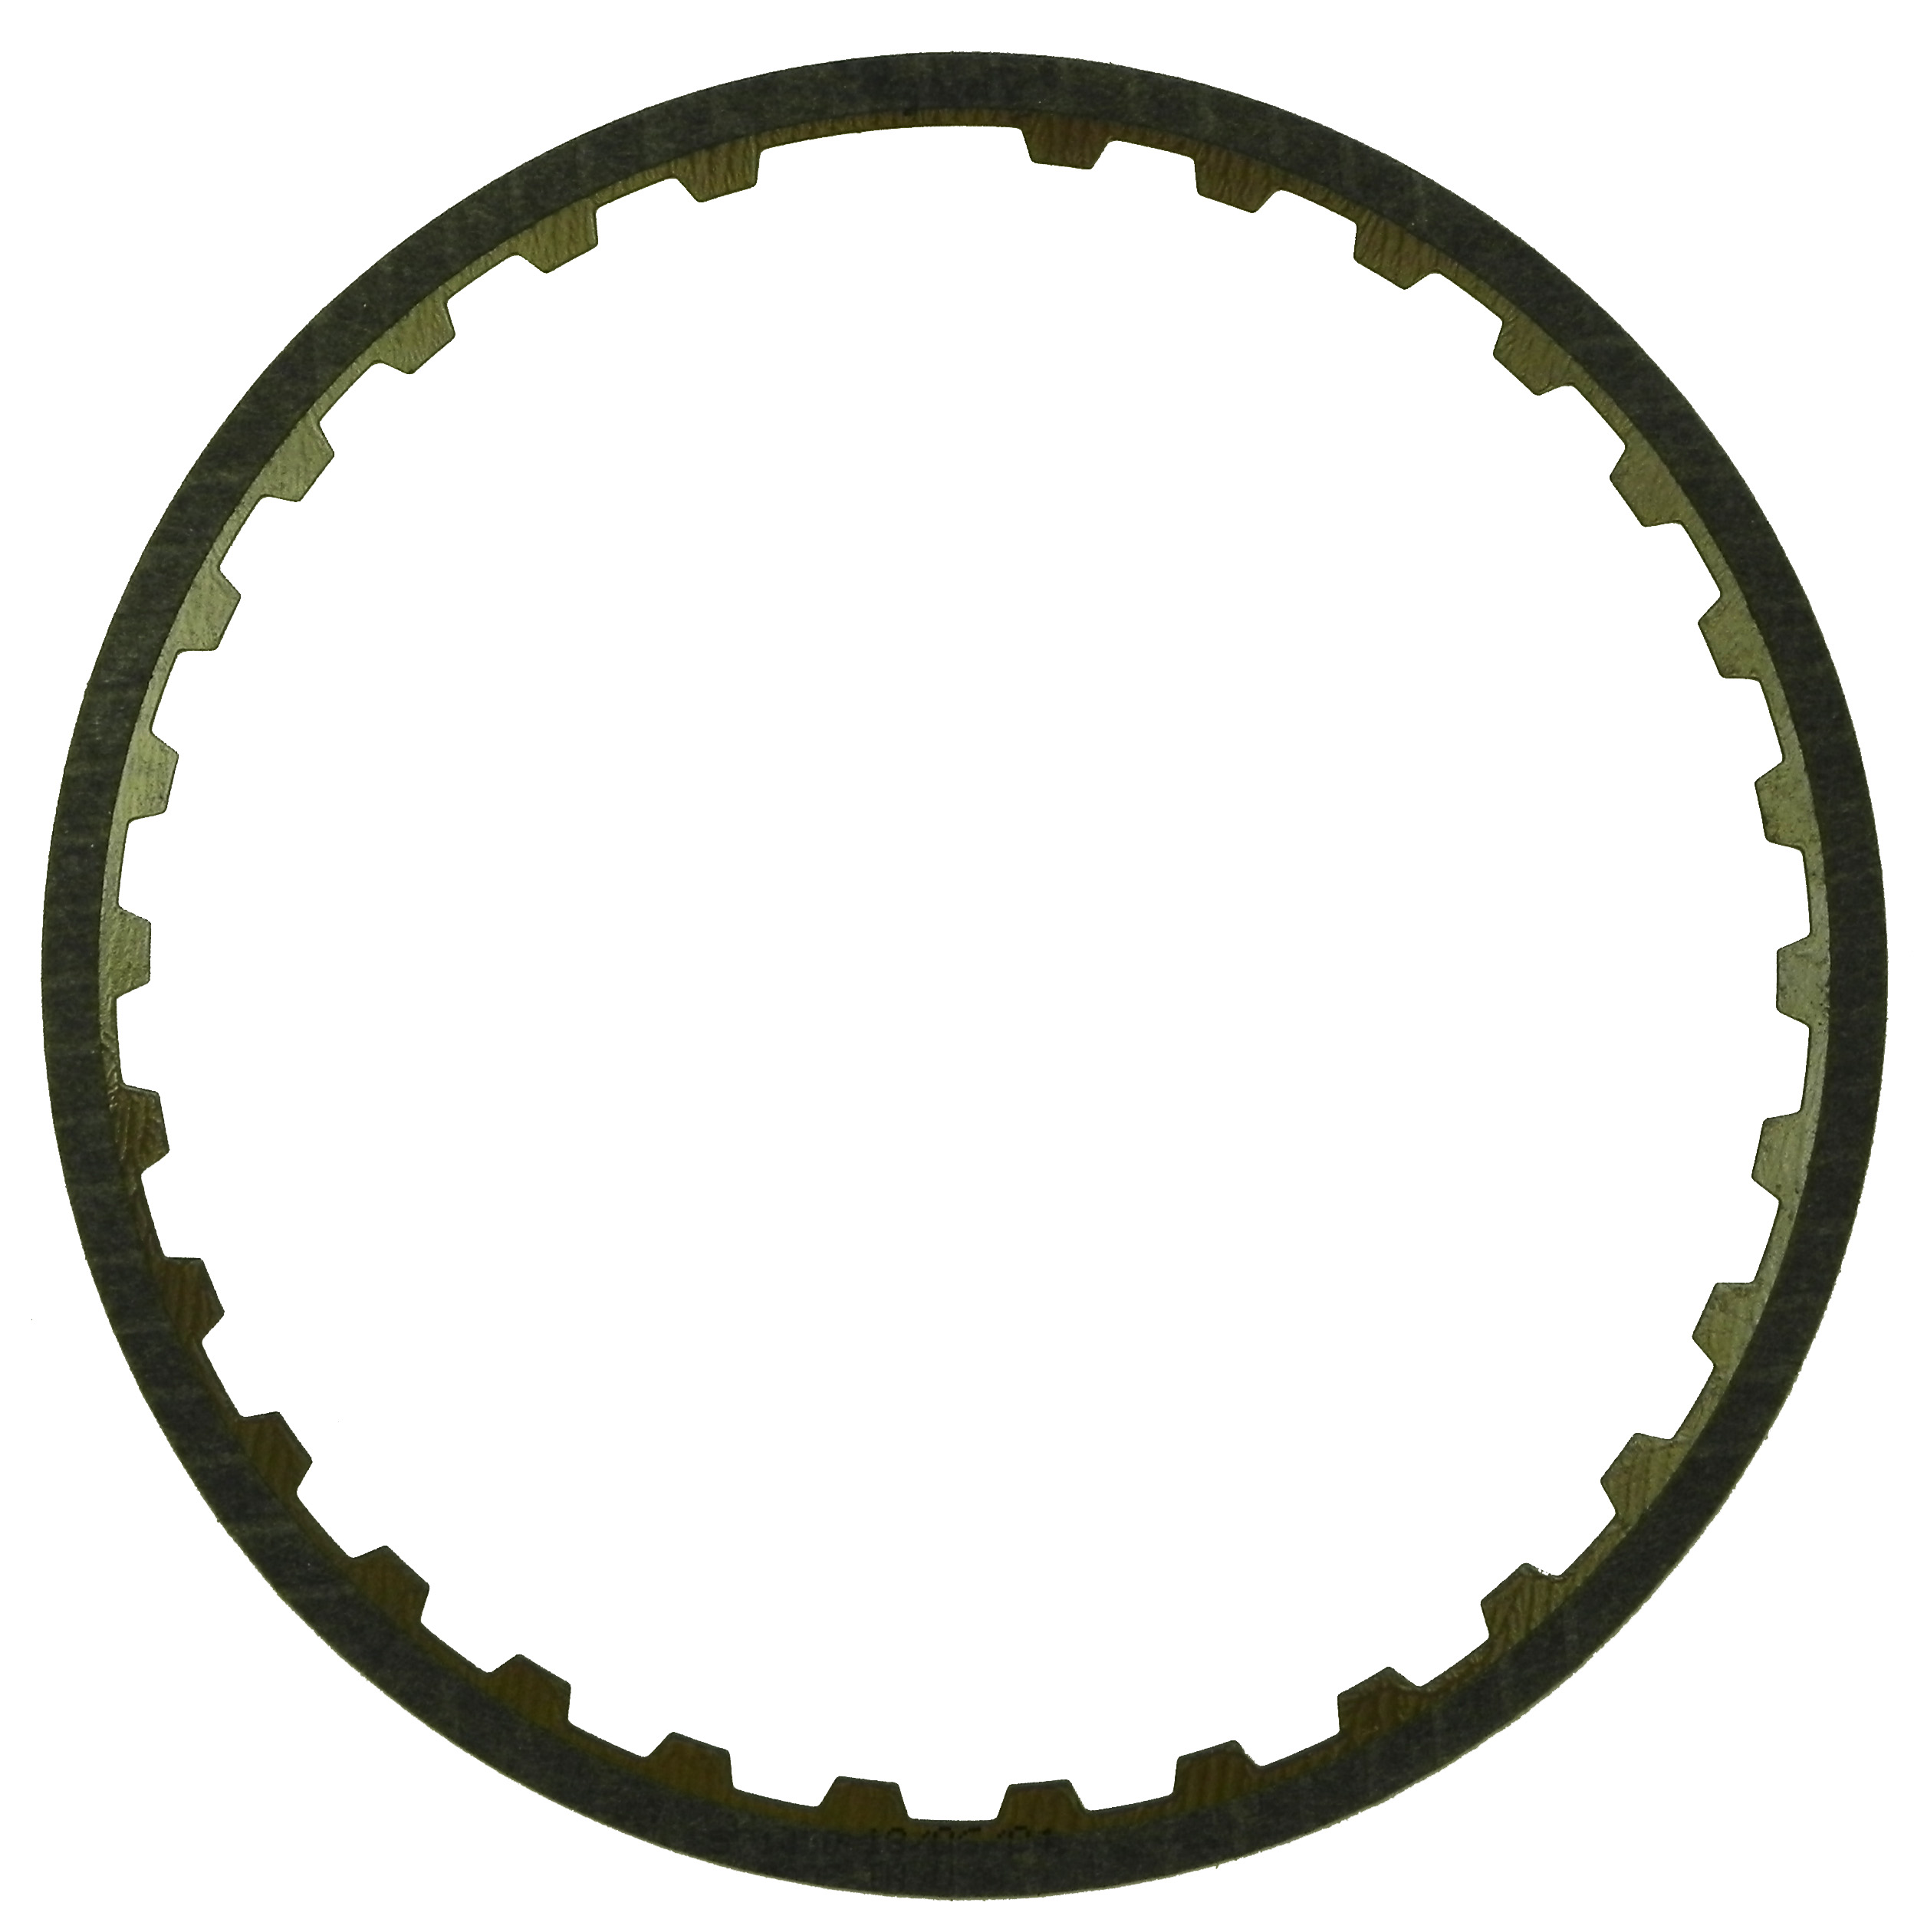 R571450 | 1995-ON Friction Clutch Plate High Energy Low, Reverse High Energy